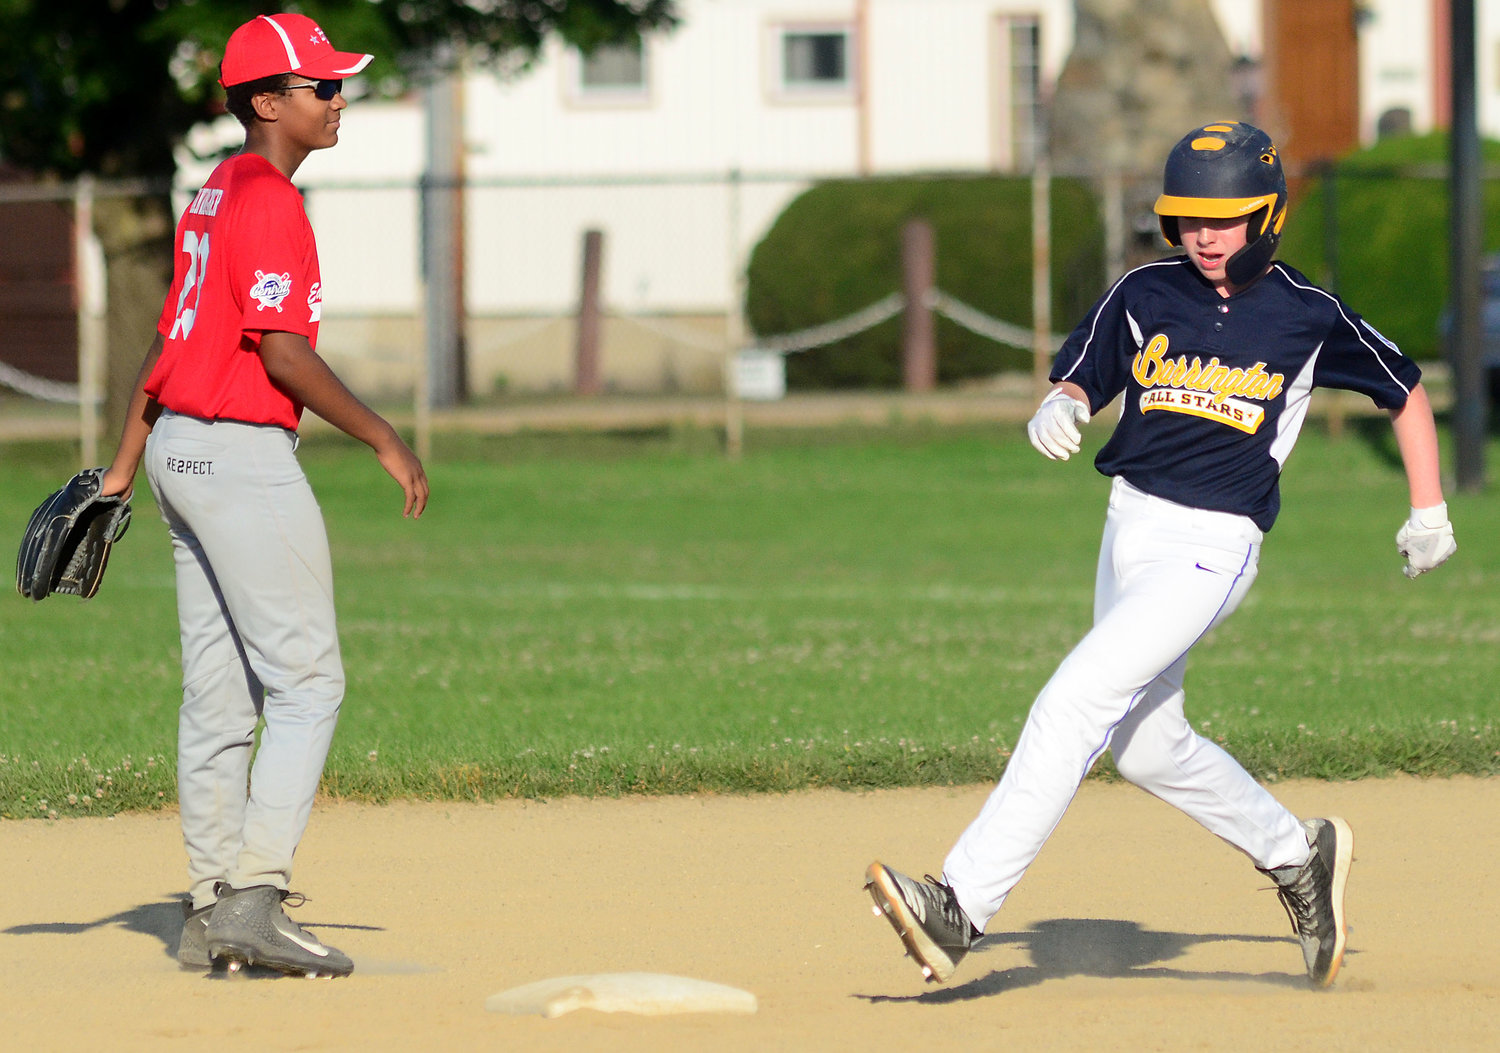 Barrington's Aimon Bickford steals second base during Monday's All-Star game at Barrington High School. At left is East Providence's shortstop Brandyn Van Wagner.